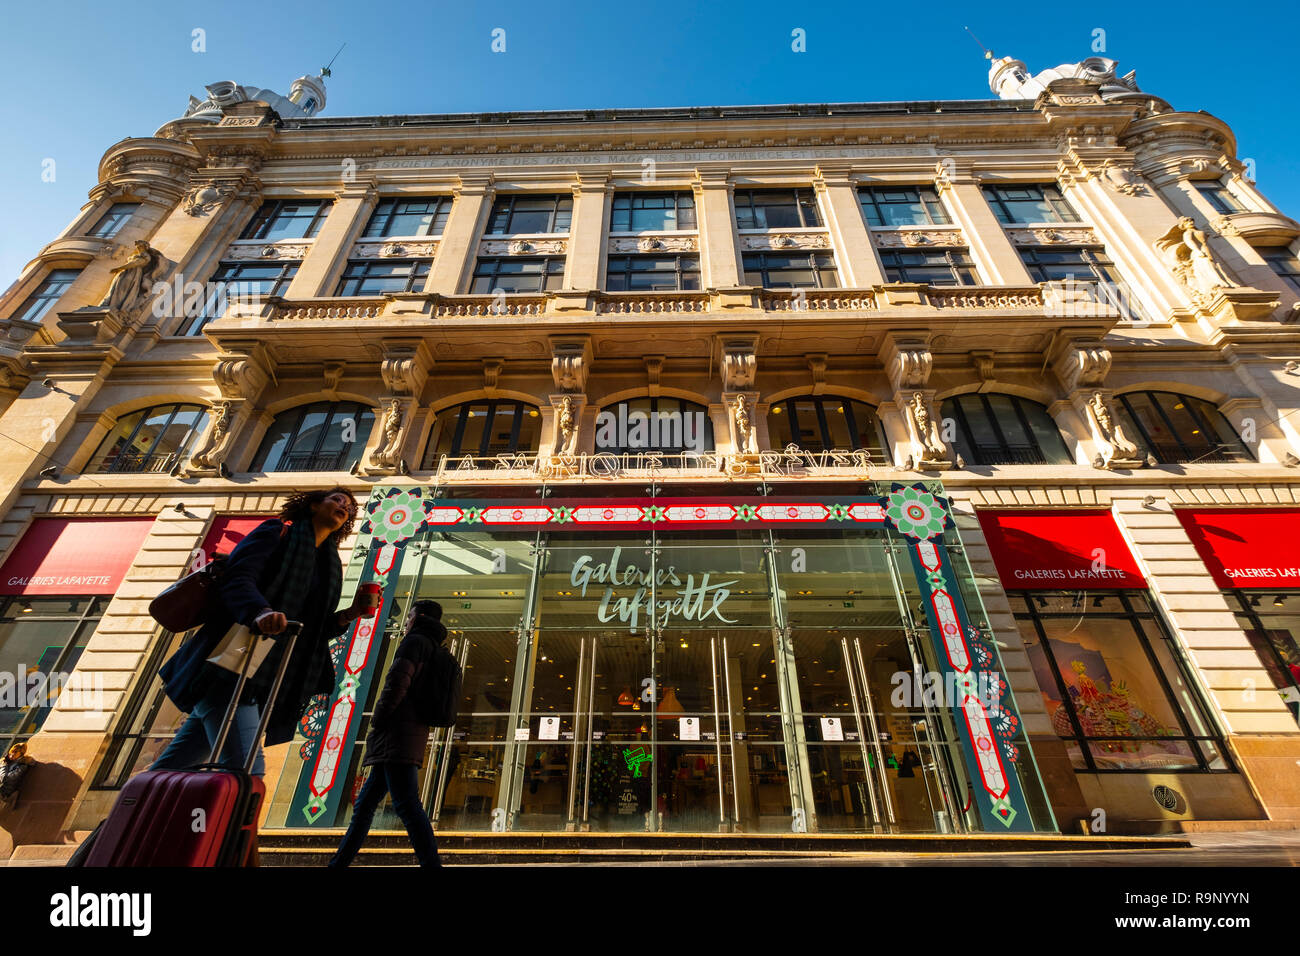 Galeries Lafayette. Shopping center in Rue Sainte-Catherine, center of Bordeaux, Gironde. Aquitaine region. France Europe. - Stock Image